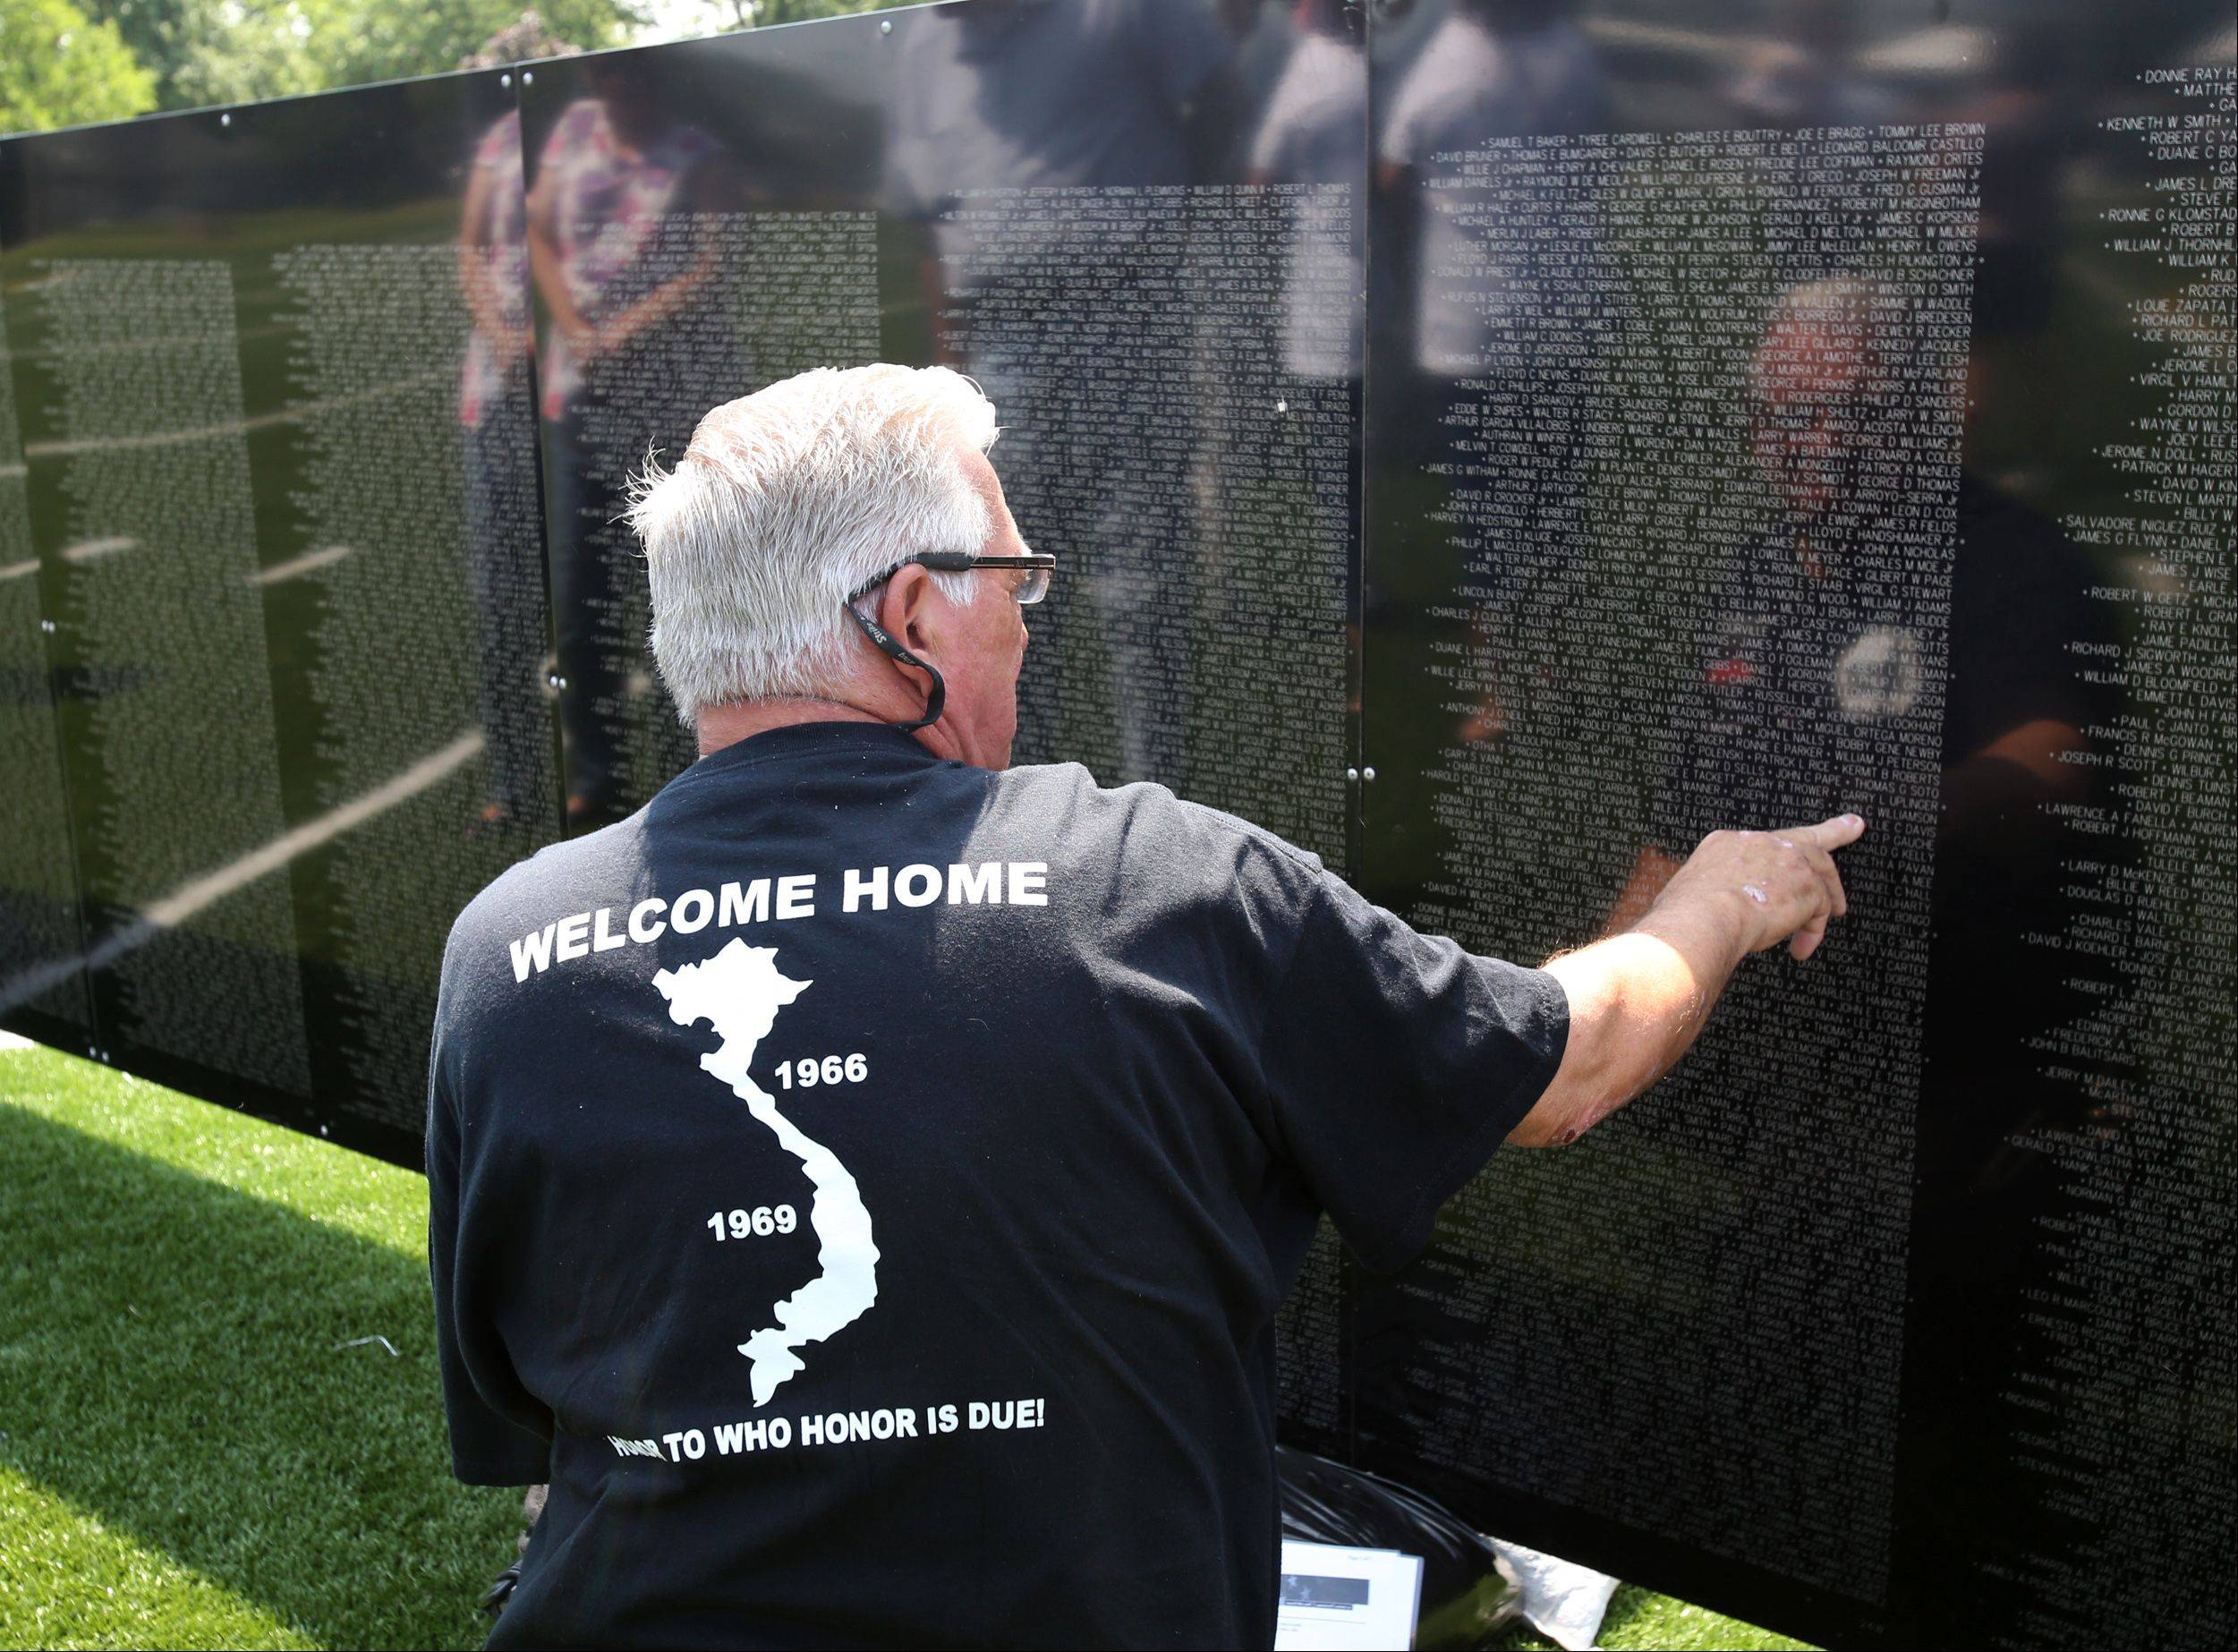 Helmut Stankevicius of Elmhurst, a veteran of the Army�s 9th Division, pays his respects Thursday at The Wall That Heals, a traveling replica of the Vietnam Veterans Memorial Wall. The replica is on display in Bensenville�s Redmond Park through Sunday.